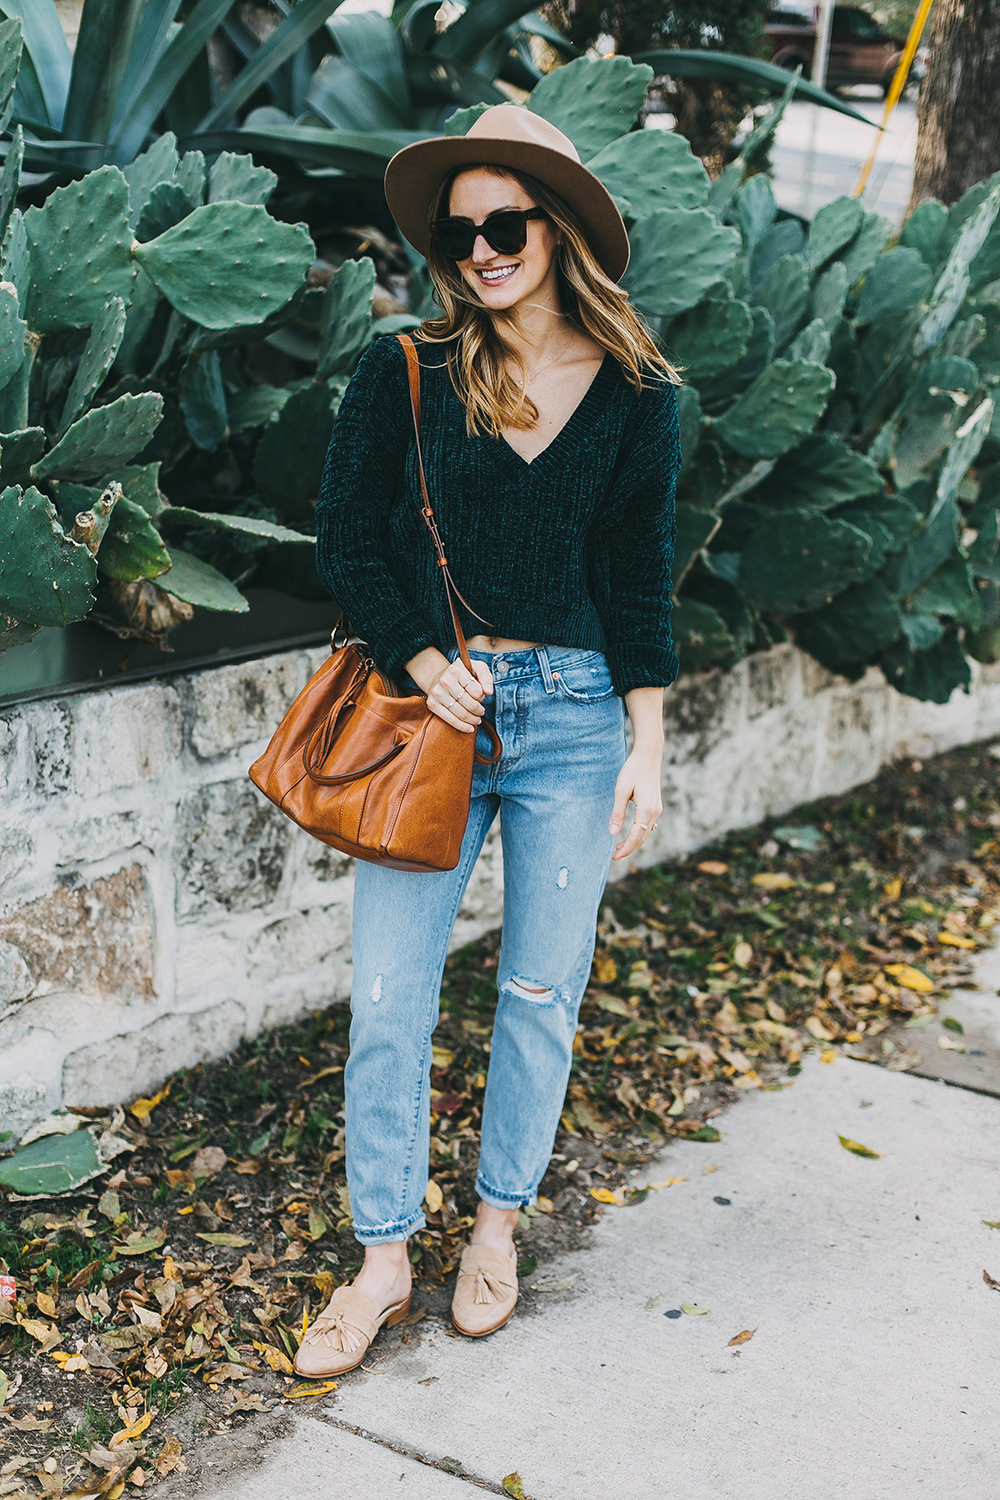 livvyland-blog-olivia-watson-austin-texas-fashion-style-blogger-teal-cropped-sweater-tassel-slides-4